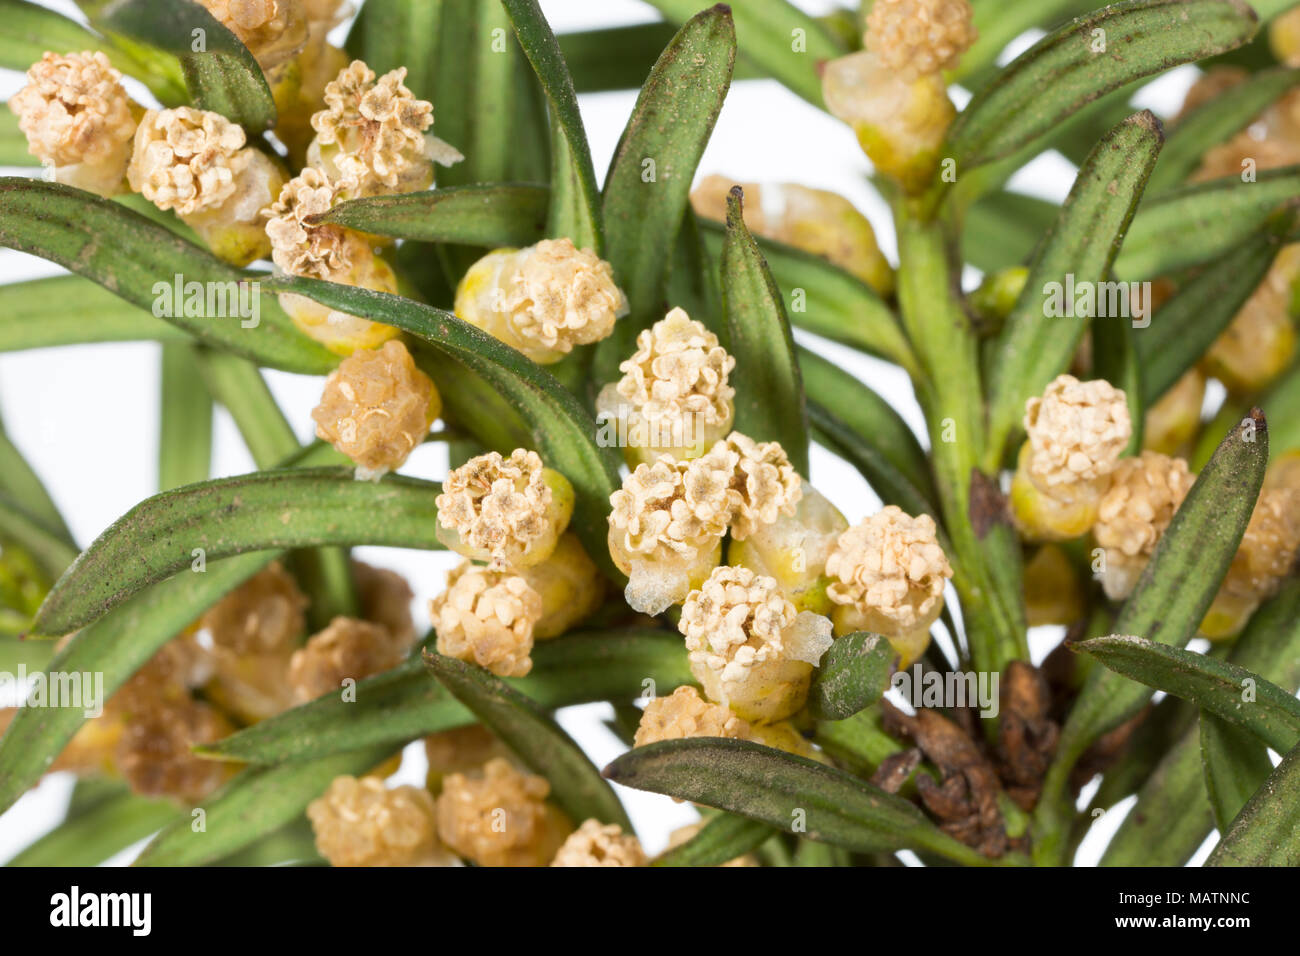 Clusters of male flowers of the common yew tree Taxus baccata, March 2018 Dorset England UK - Stock Image